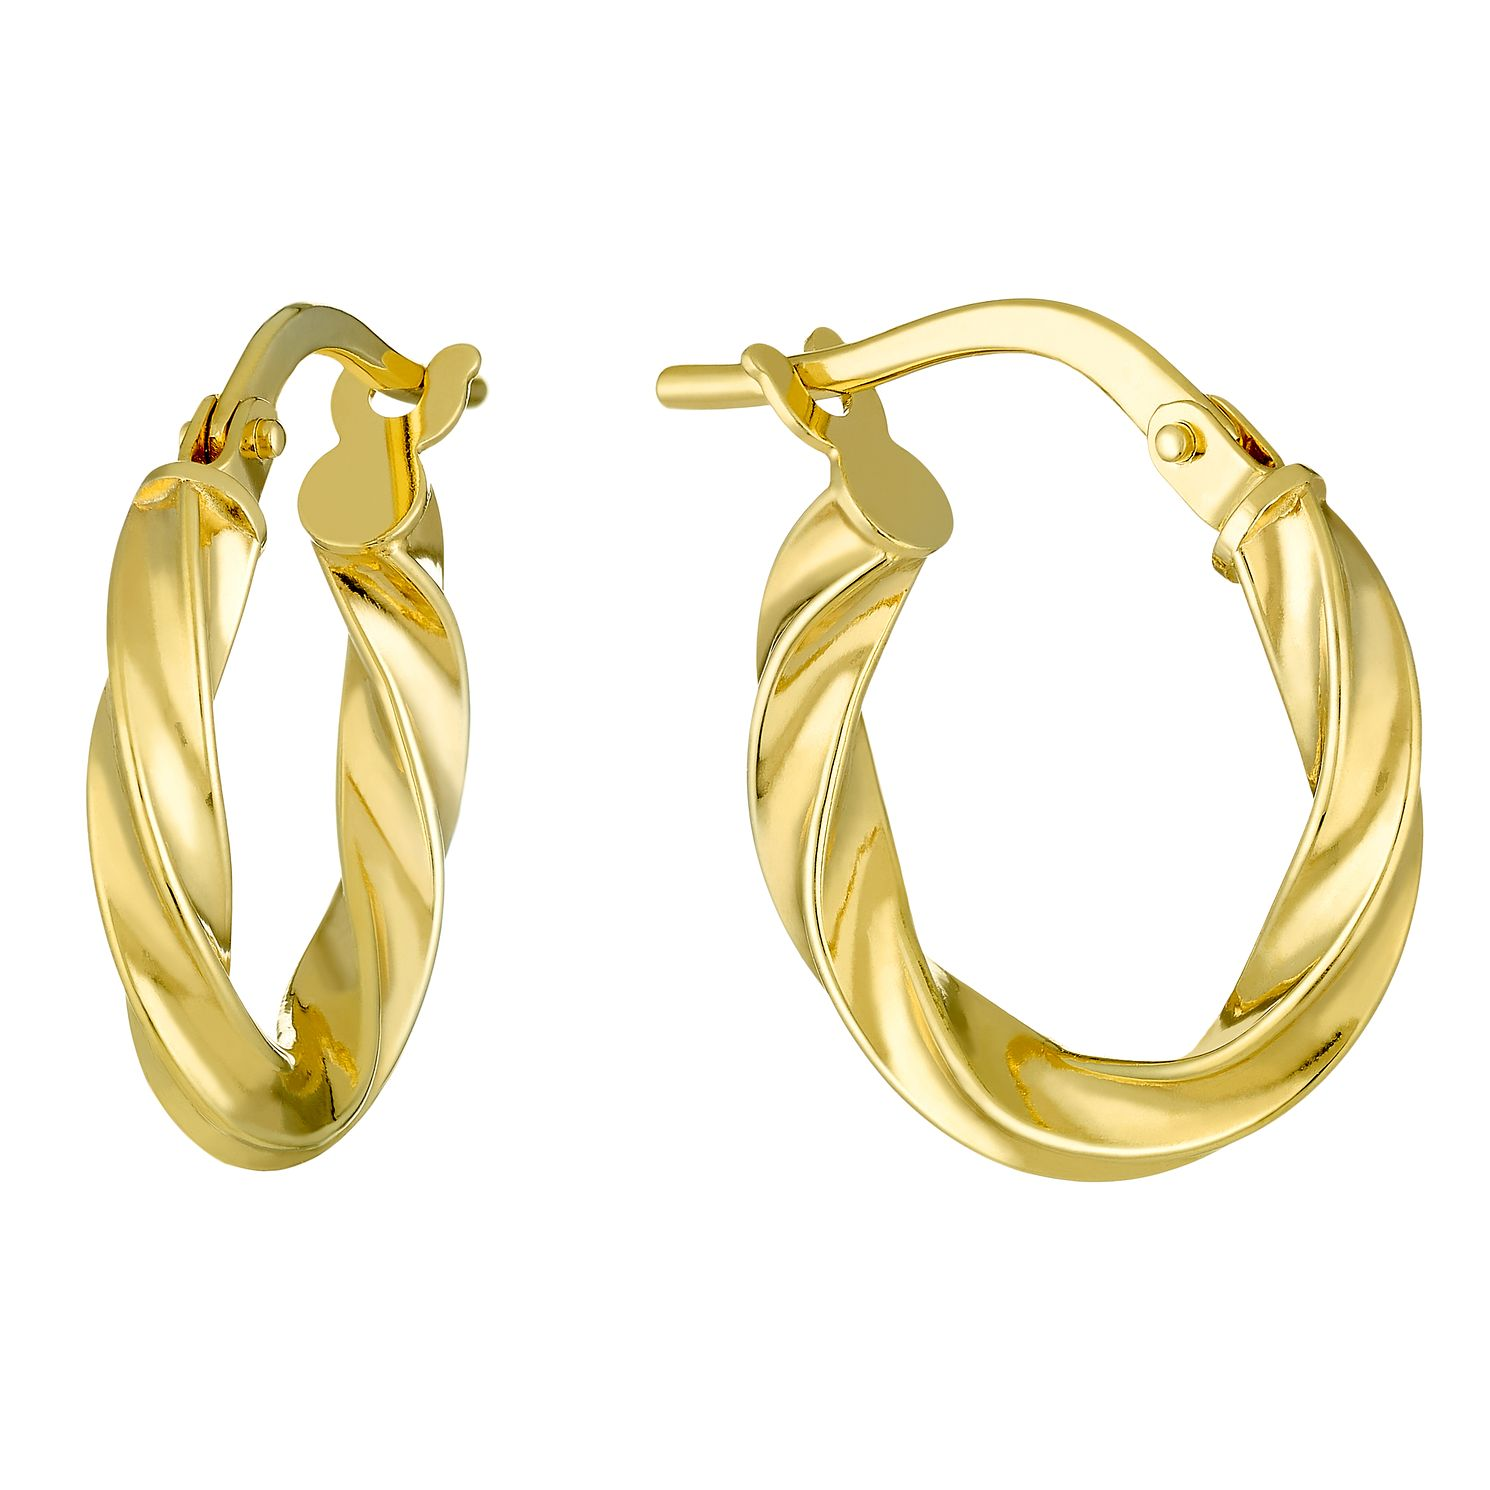 9ct Yellow Gold 10mm Hoop Earrings - Product number 3800121